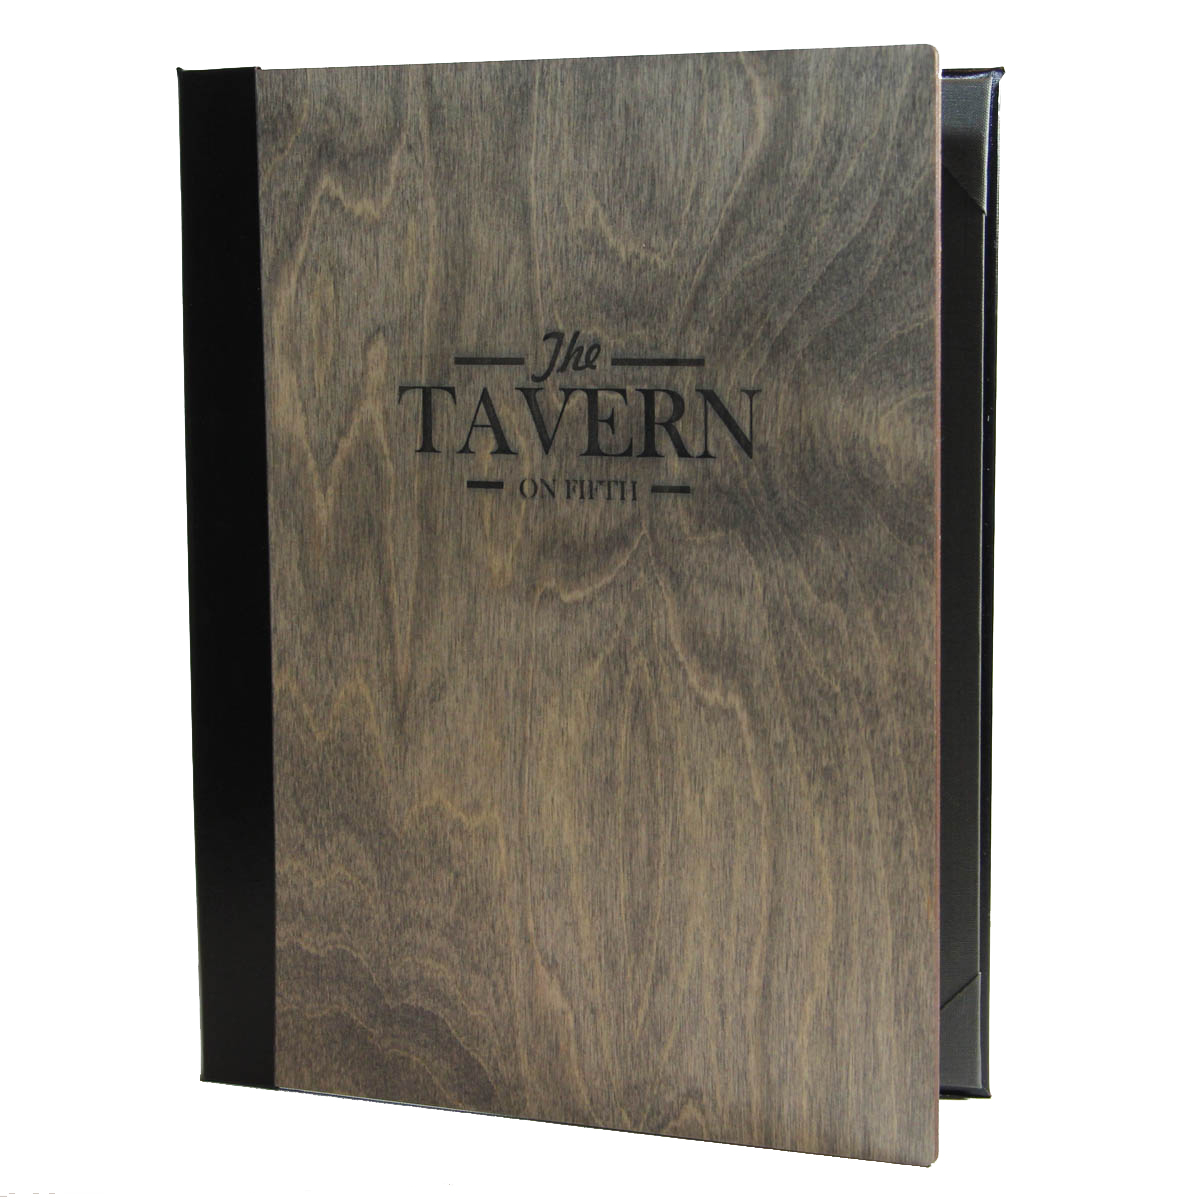 Baltic Birch Two View Menu Cover 8.5x11 in driftwood finish and black imitation leather spine.